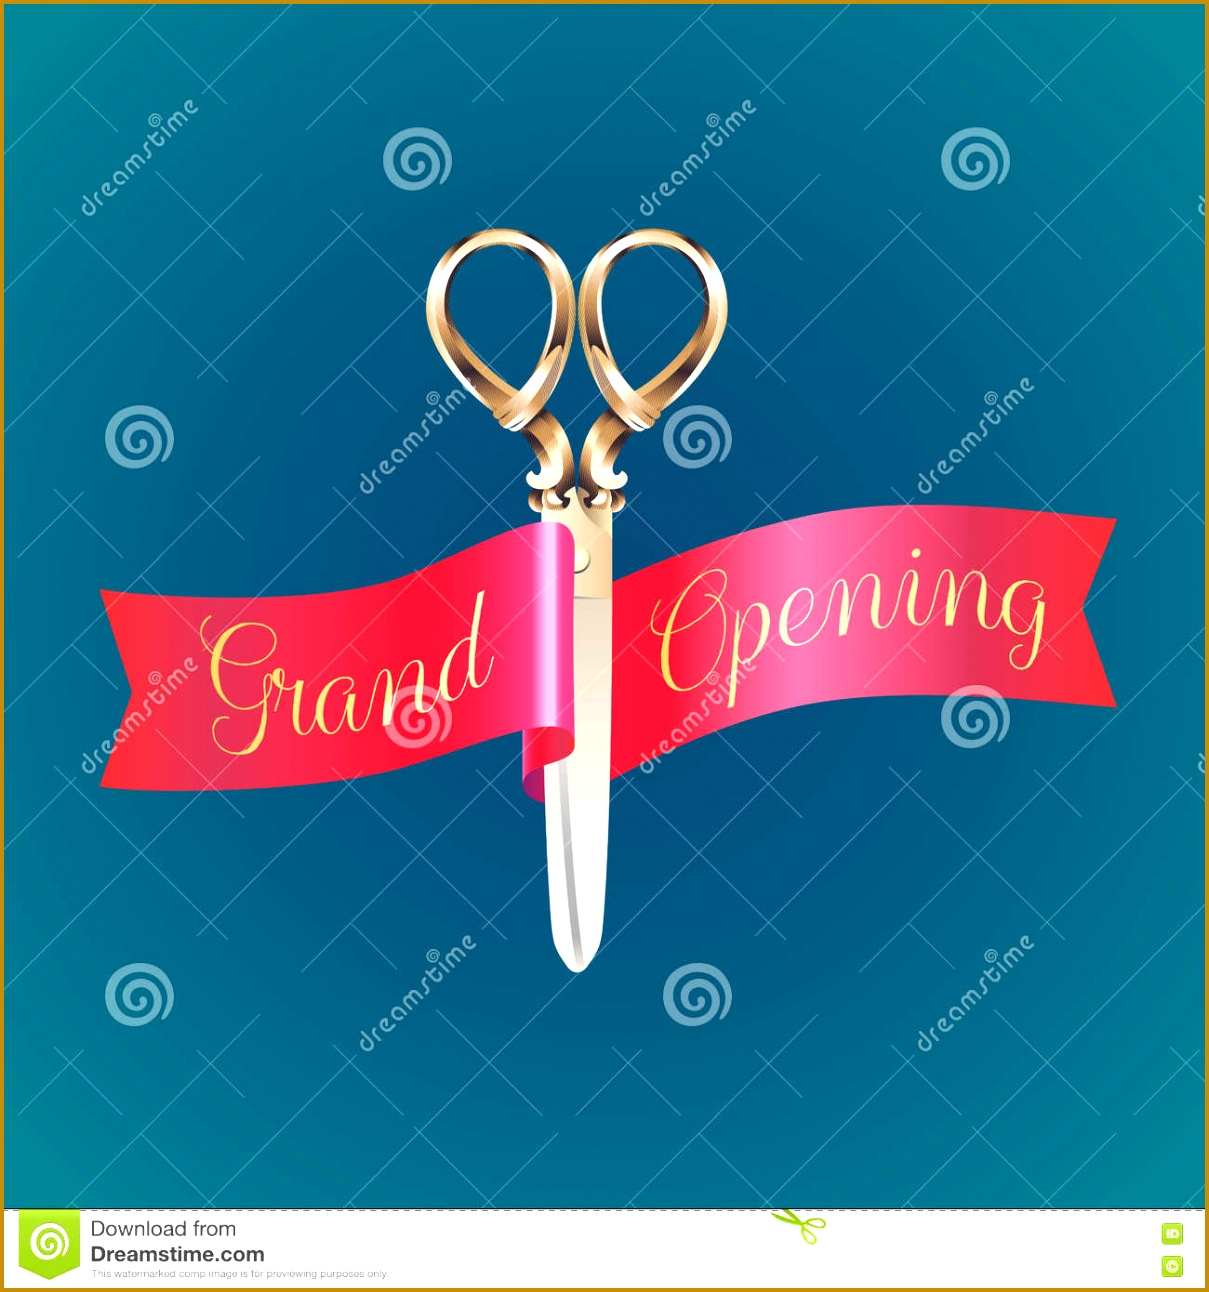 Royalty Free Vector Download Grand Opening Opening Soon 12921209